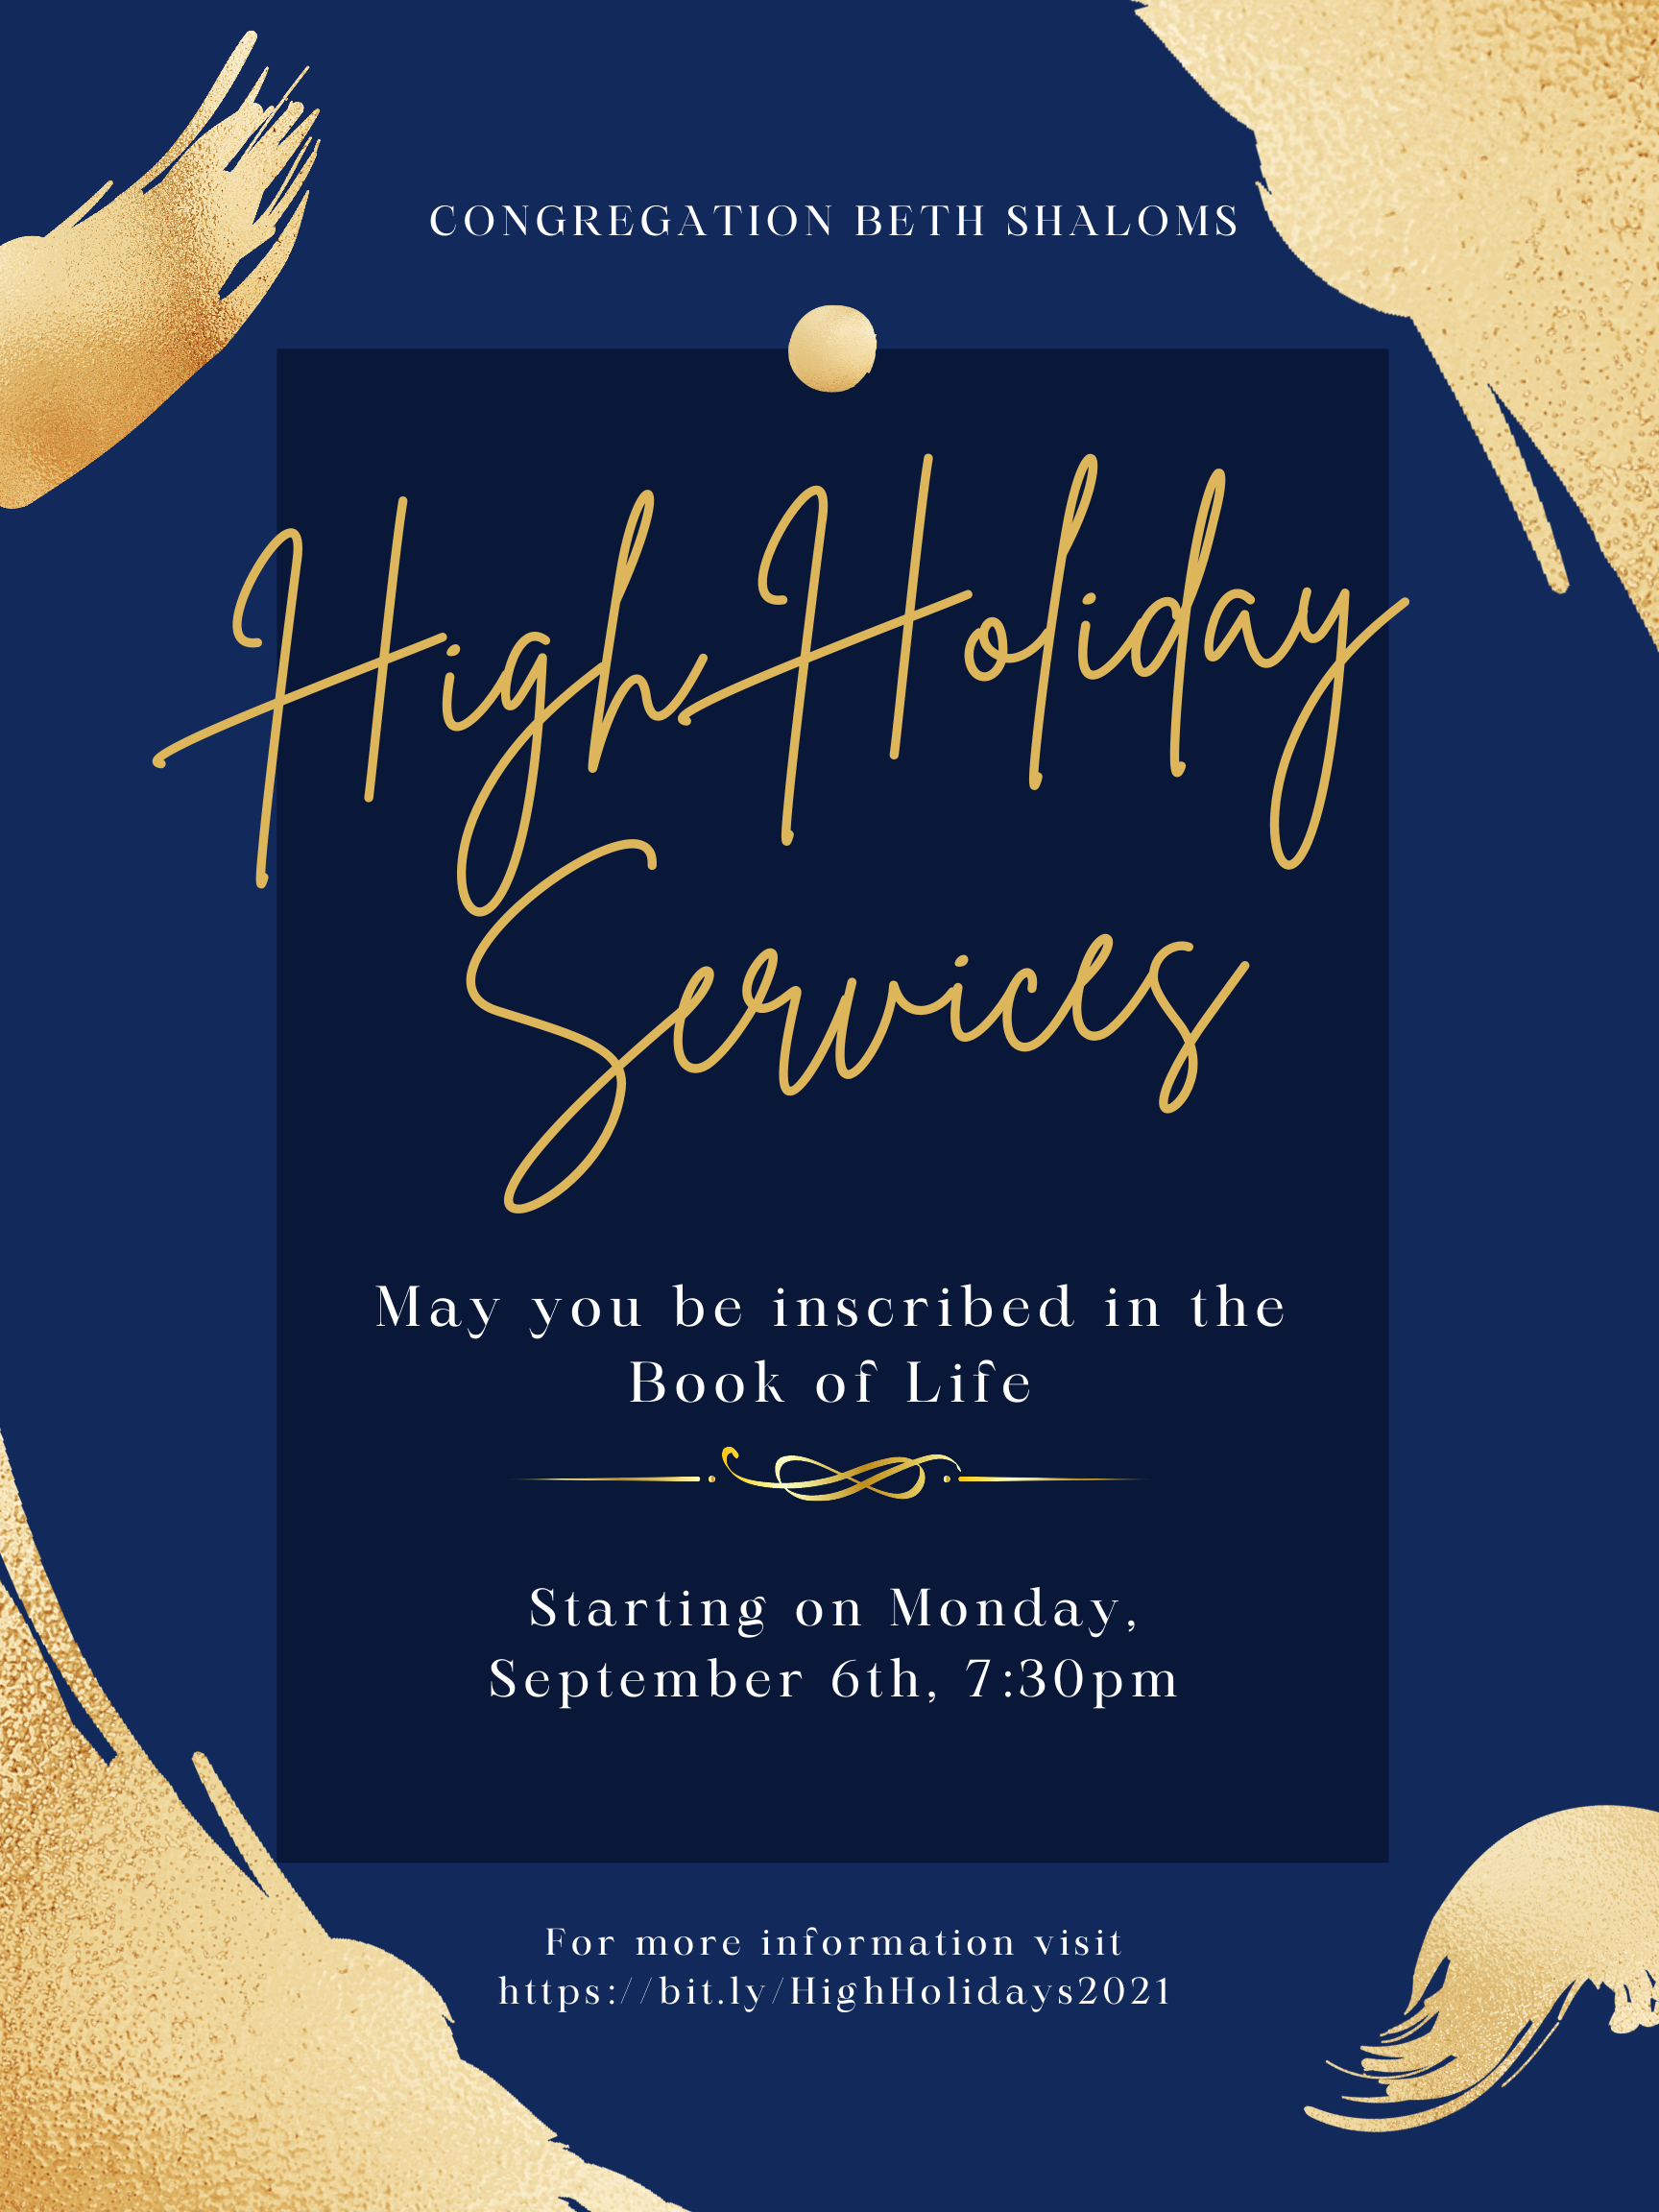 """</a>                                                                                                                                                                                       <span class=""""slider_description"""">Join Congregation Beth Shalom either in-person or digitally for our High Holiday Services! Click here to get service times, and to reserve your seats!</span>                                                                                     <a href=""""https://www.cbsclearwater.org/cbs-high-holy-days-5782.html"""" class=""""slider_link""""                             target=""""_blank"""">                             Click to RSVP for Services                            </a>"""